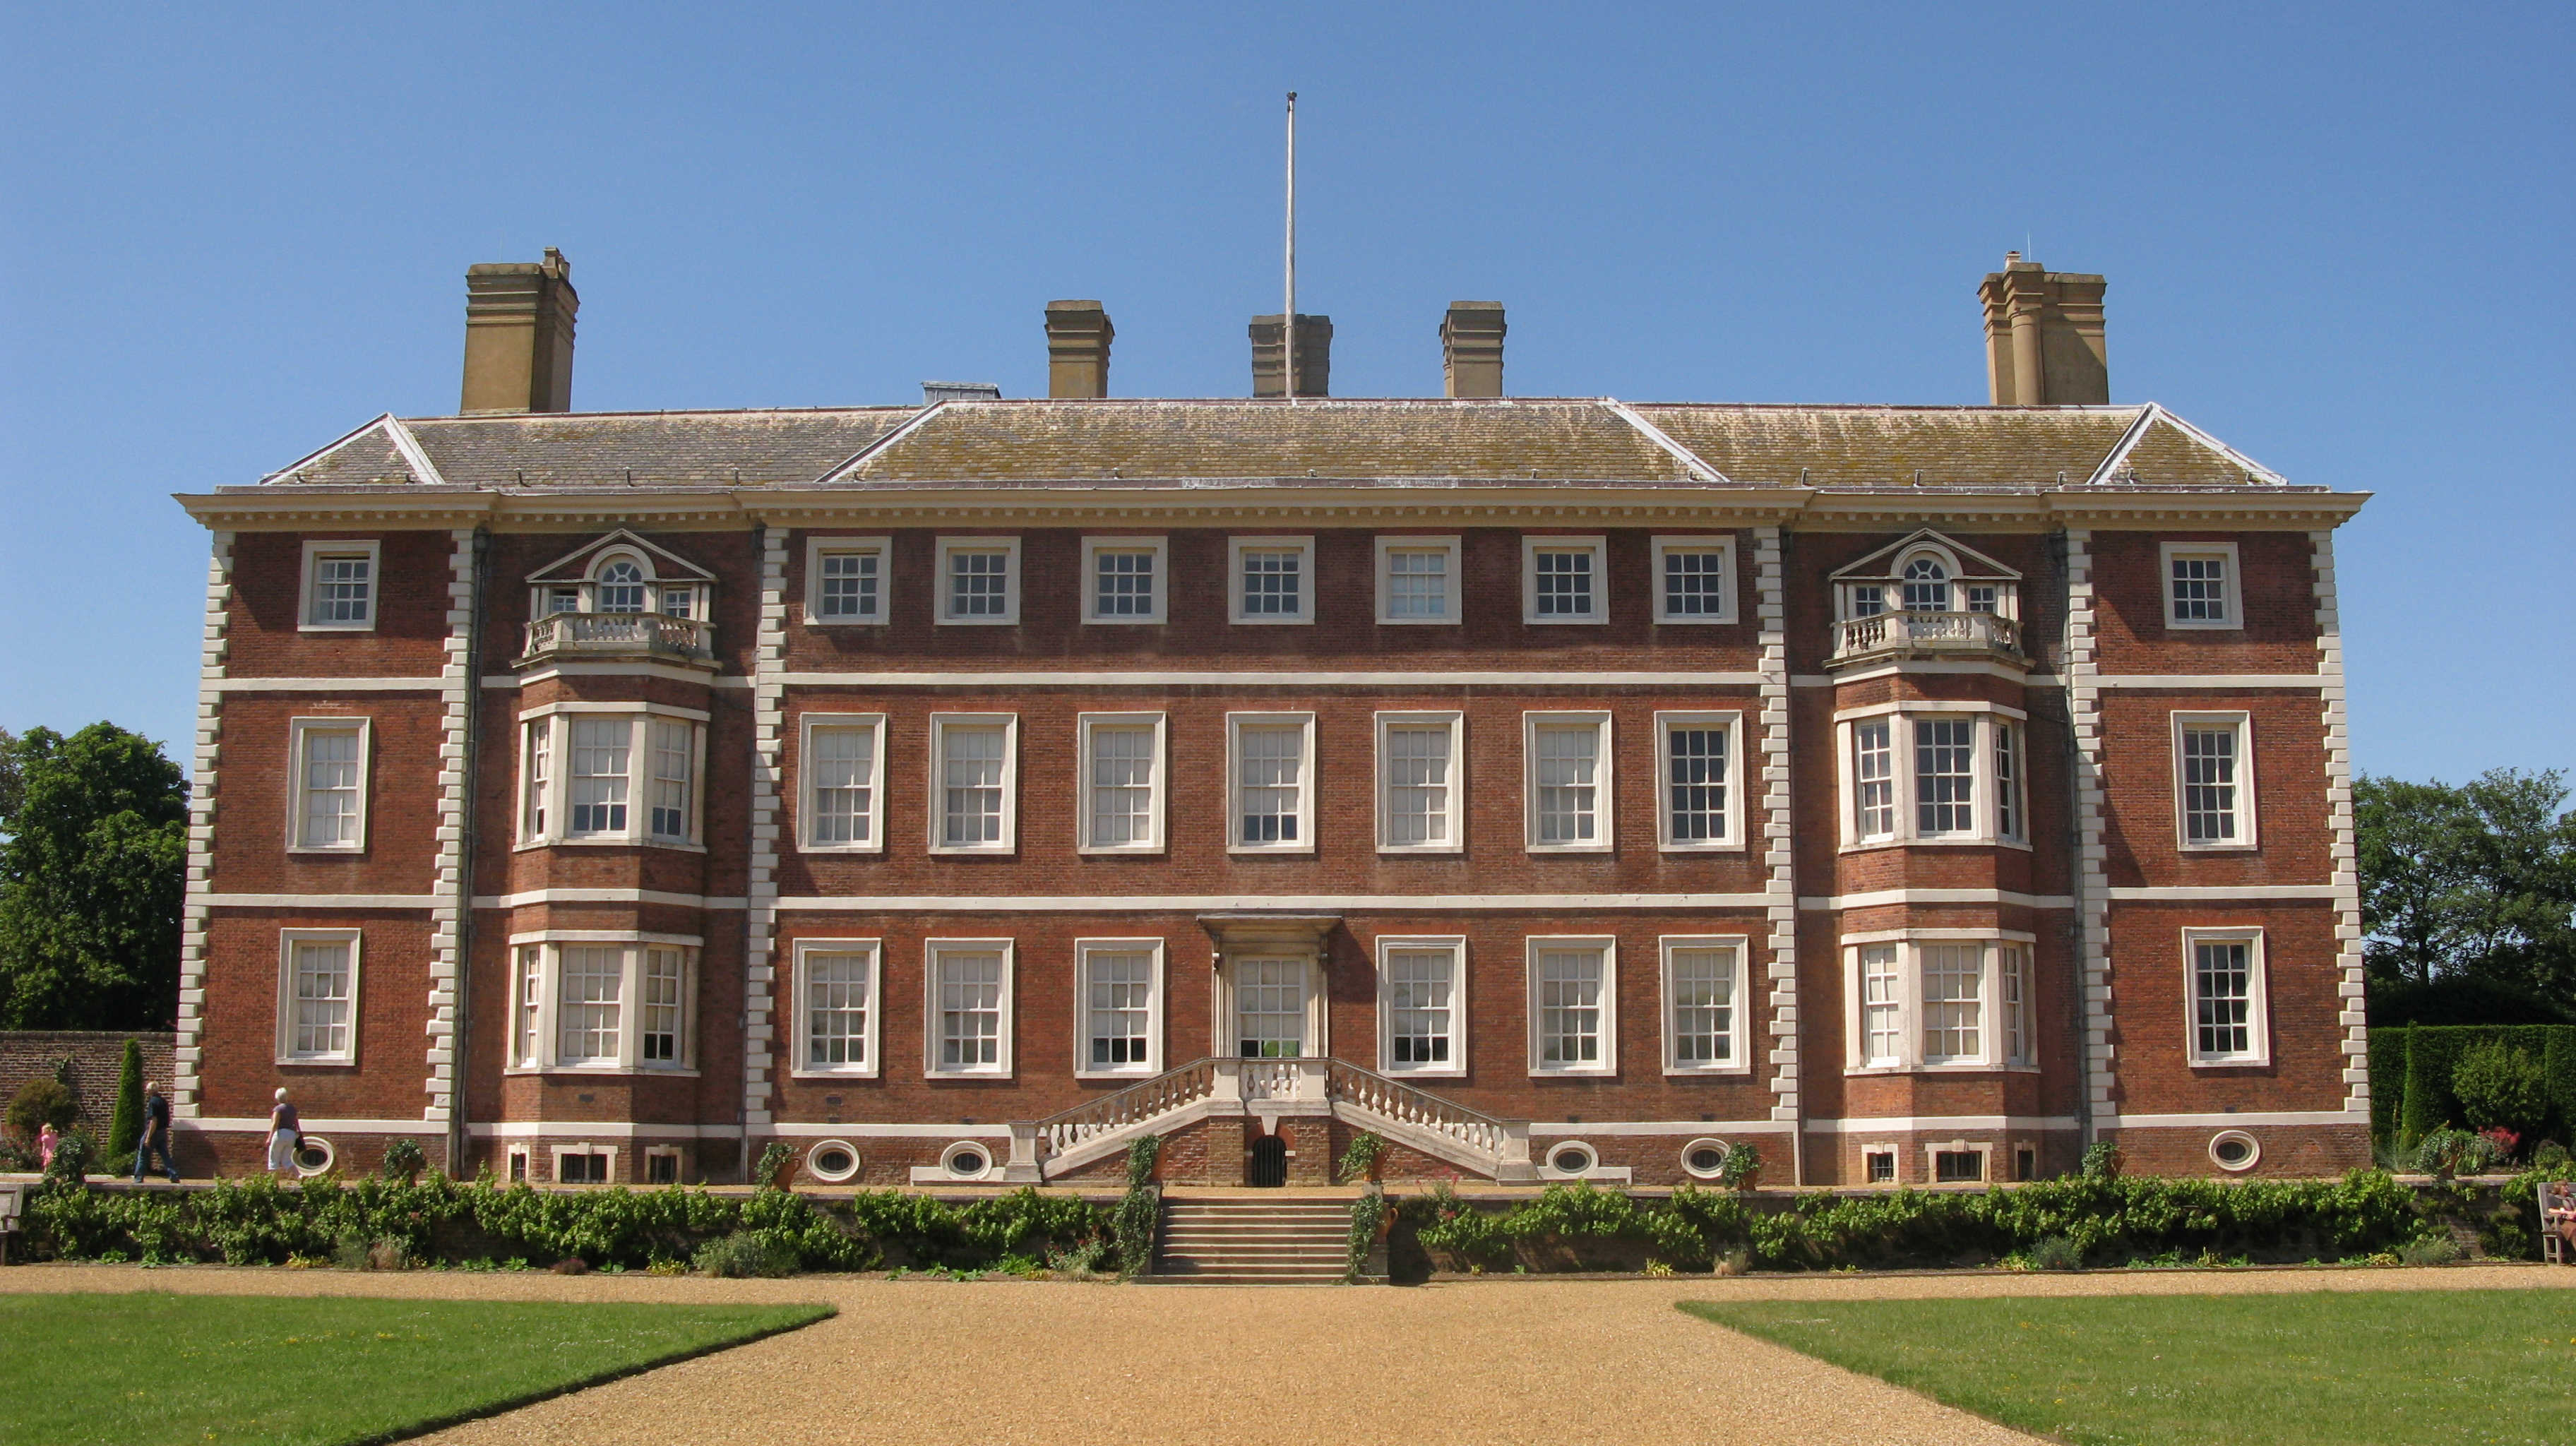 Victorian Style Mansions The History And Architecture Of Ham House